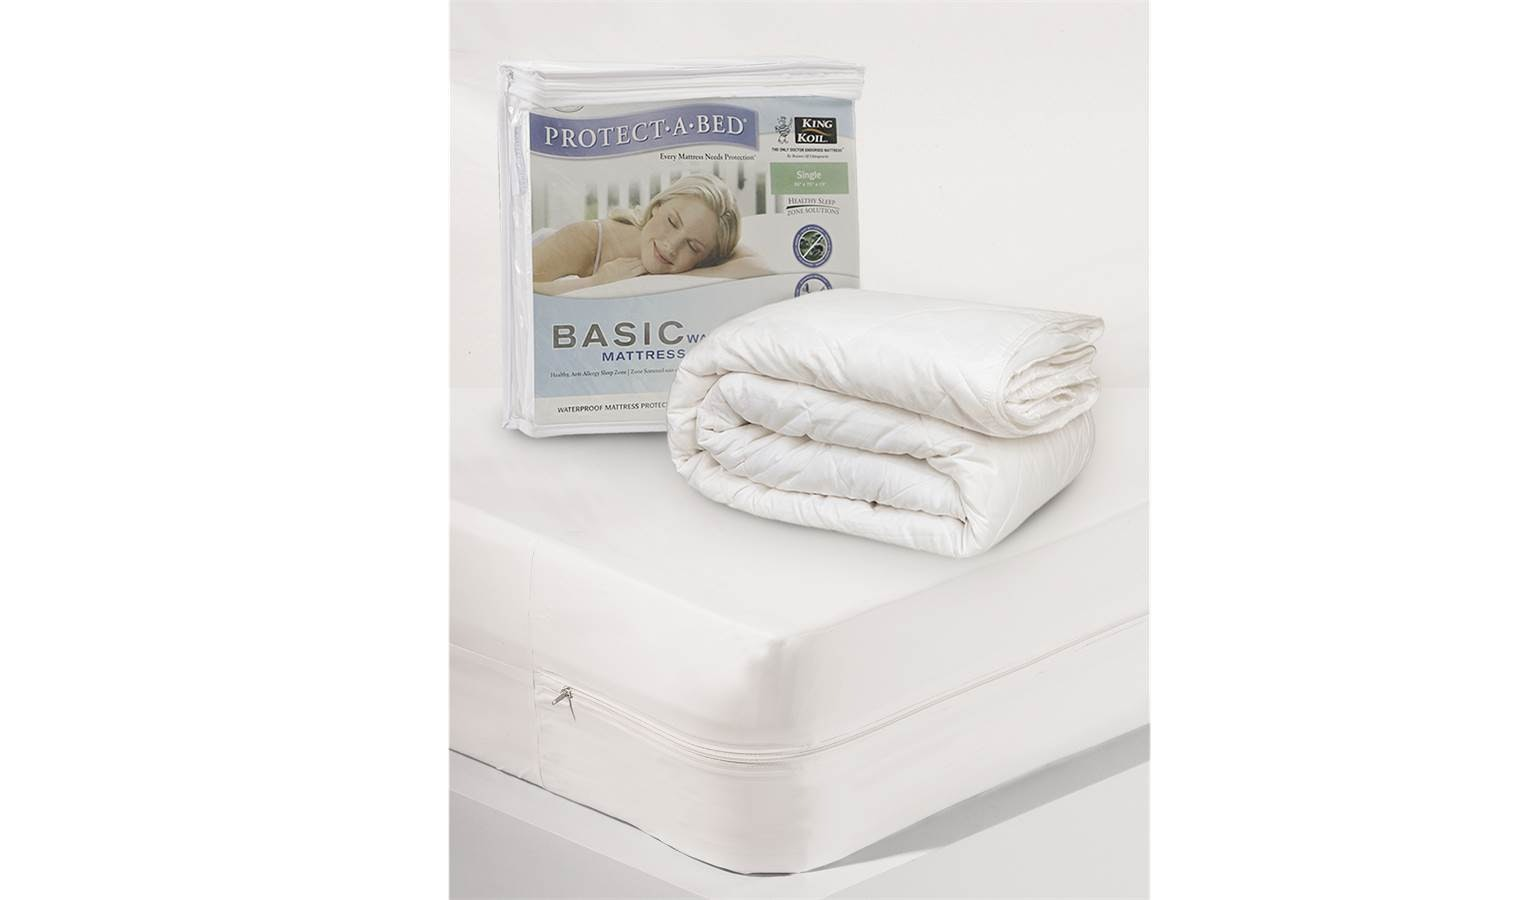 King Koil Protect A Bed Basic Mattress Protector Queen Size Harvey Norman Singapore